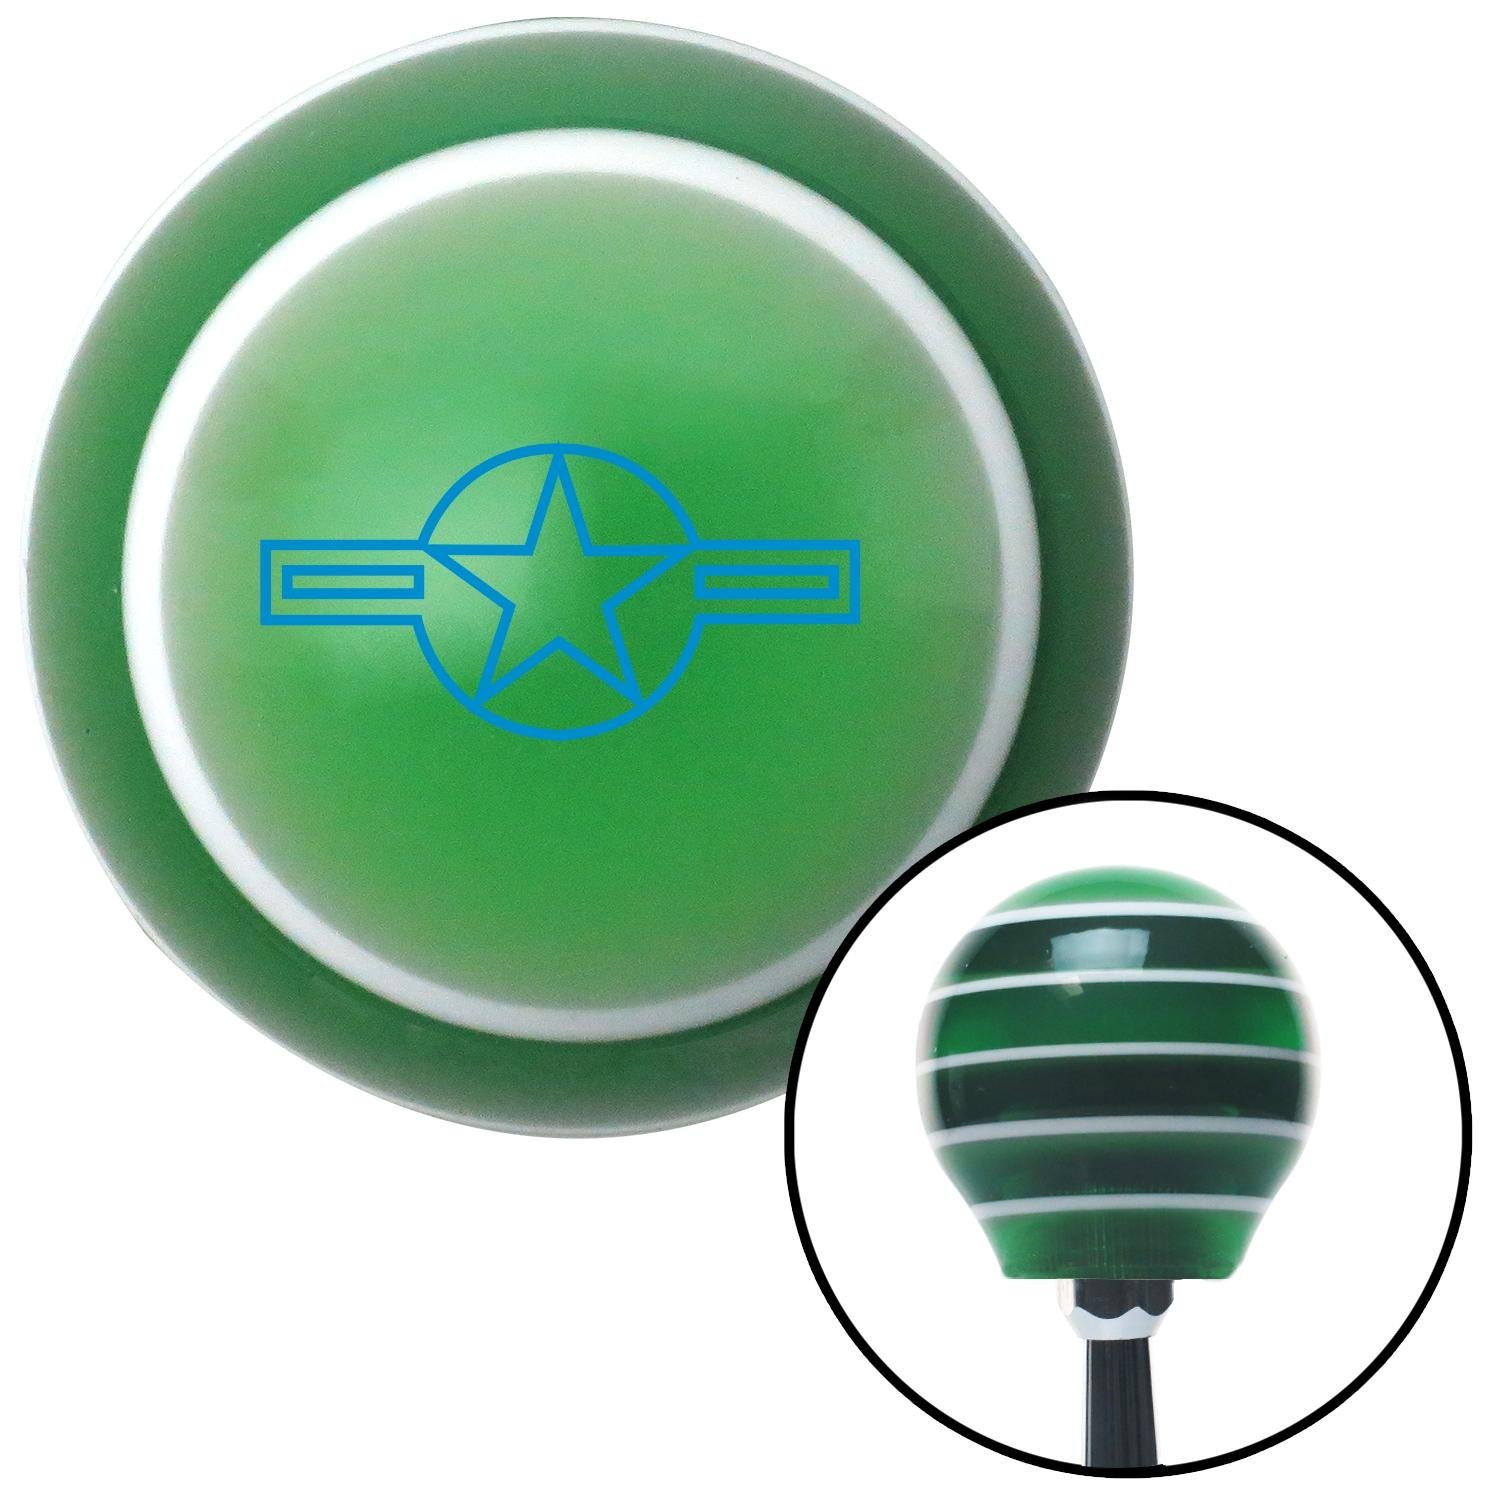 American Shifter 124653 Green Stripe Shift Knob with M16 x 1.5 Insert Blue US Air Force Star